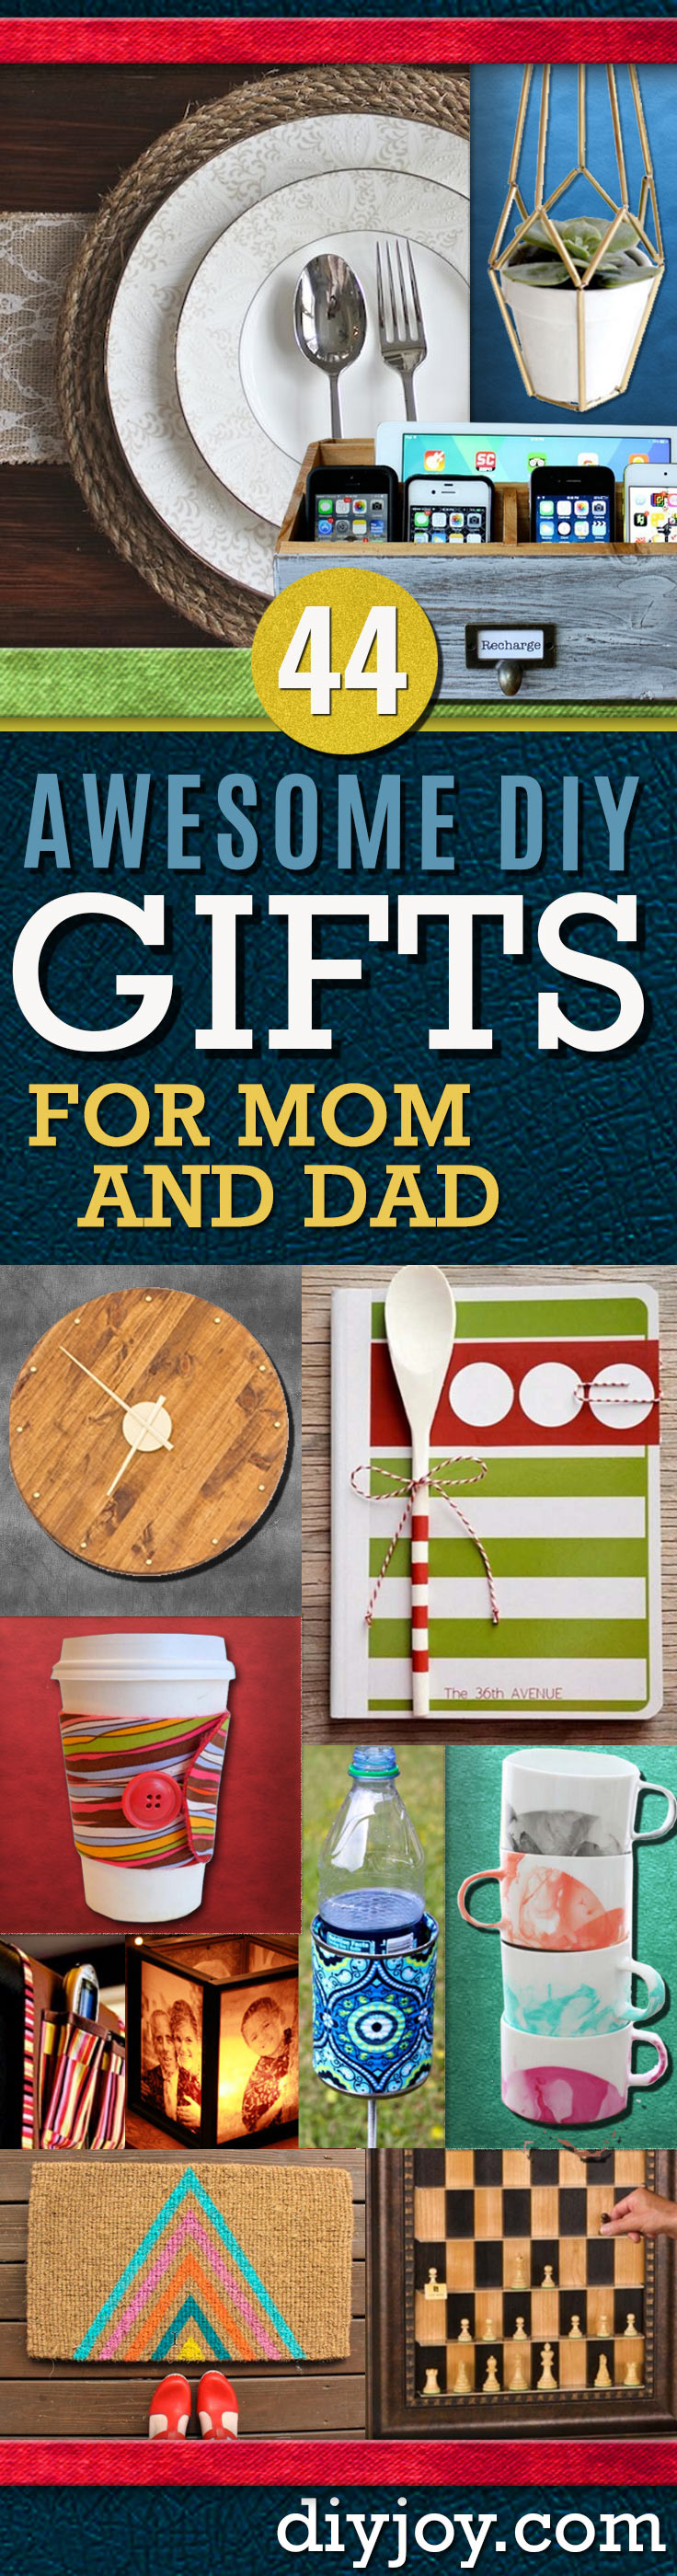 Best ideas about DIY Christmas Gifts For Dad . Save or Pin Awesome DIY Gift Ideas Mom and Dad Will Love Now.